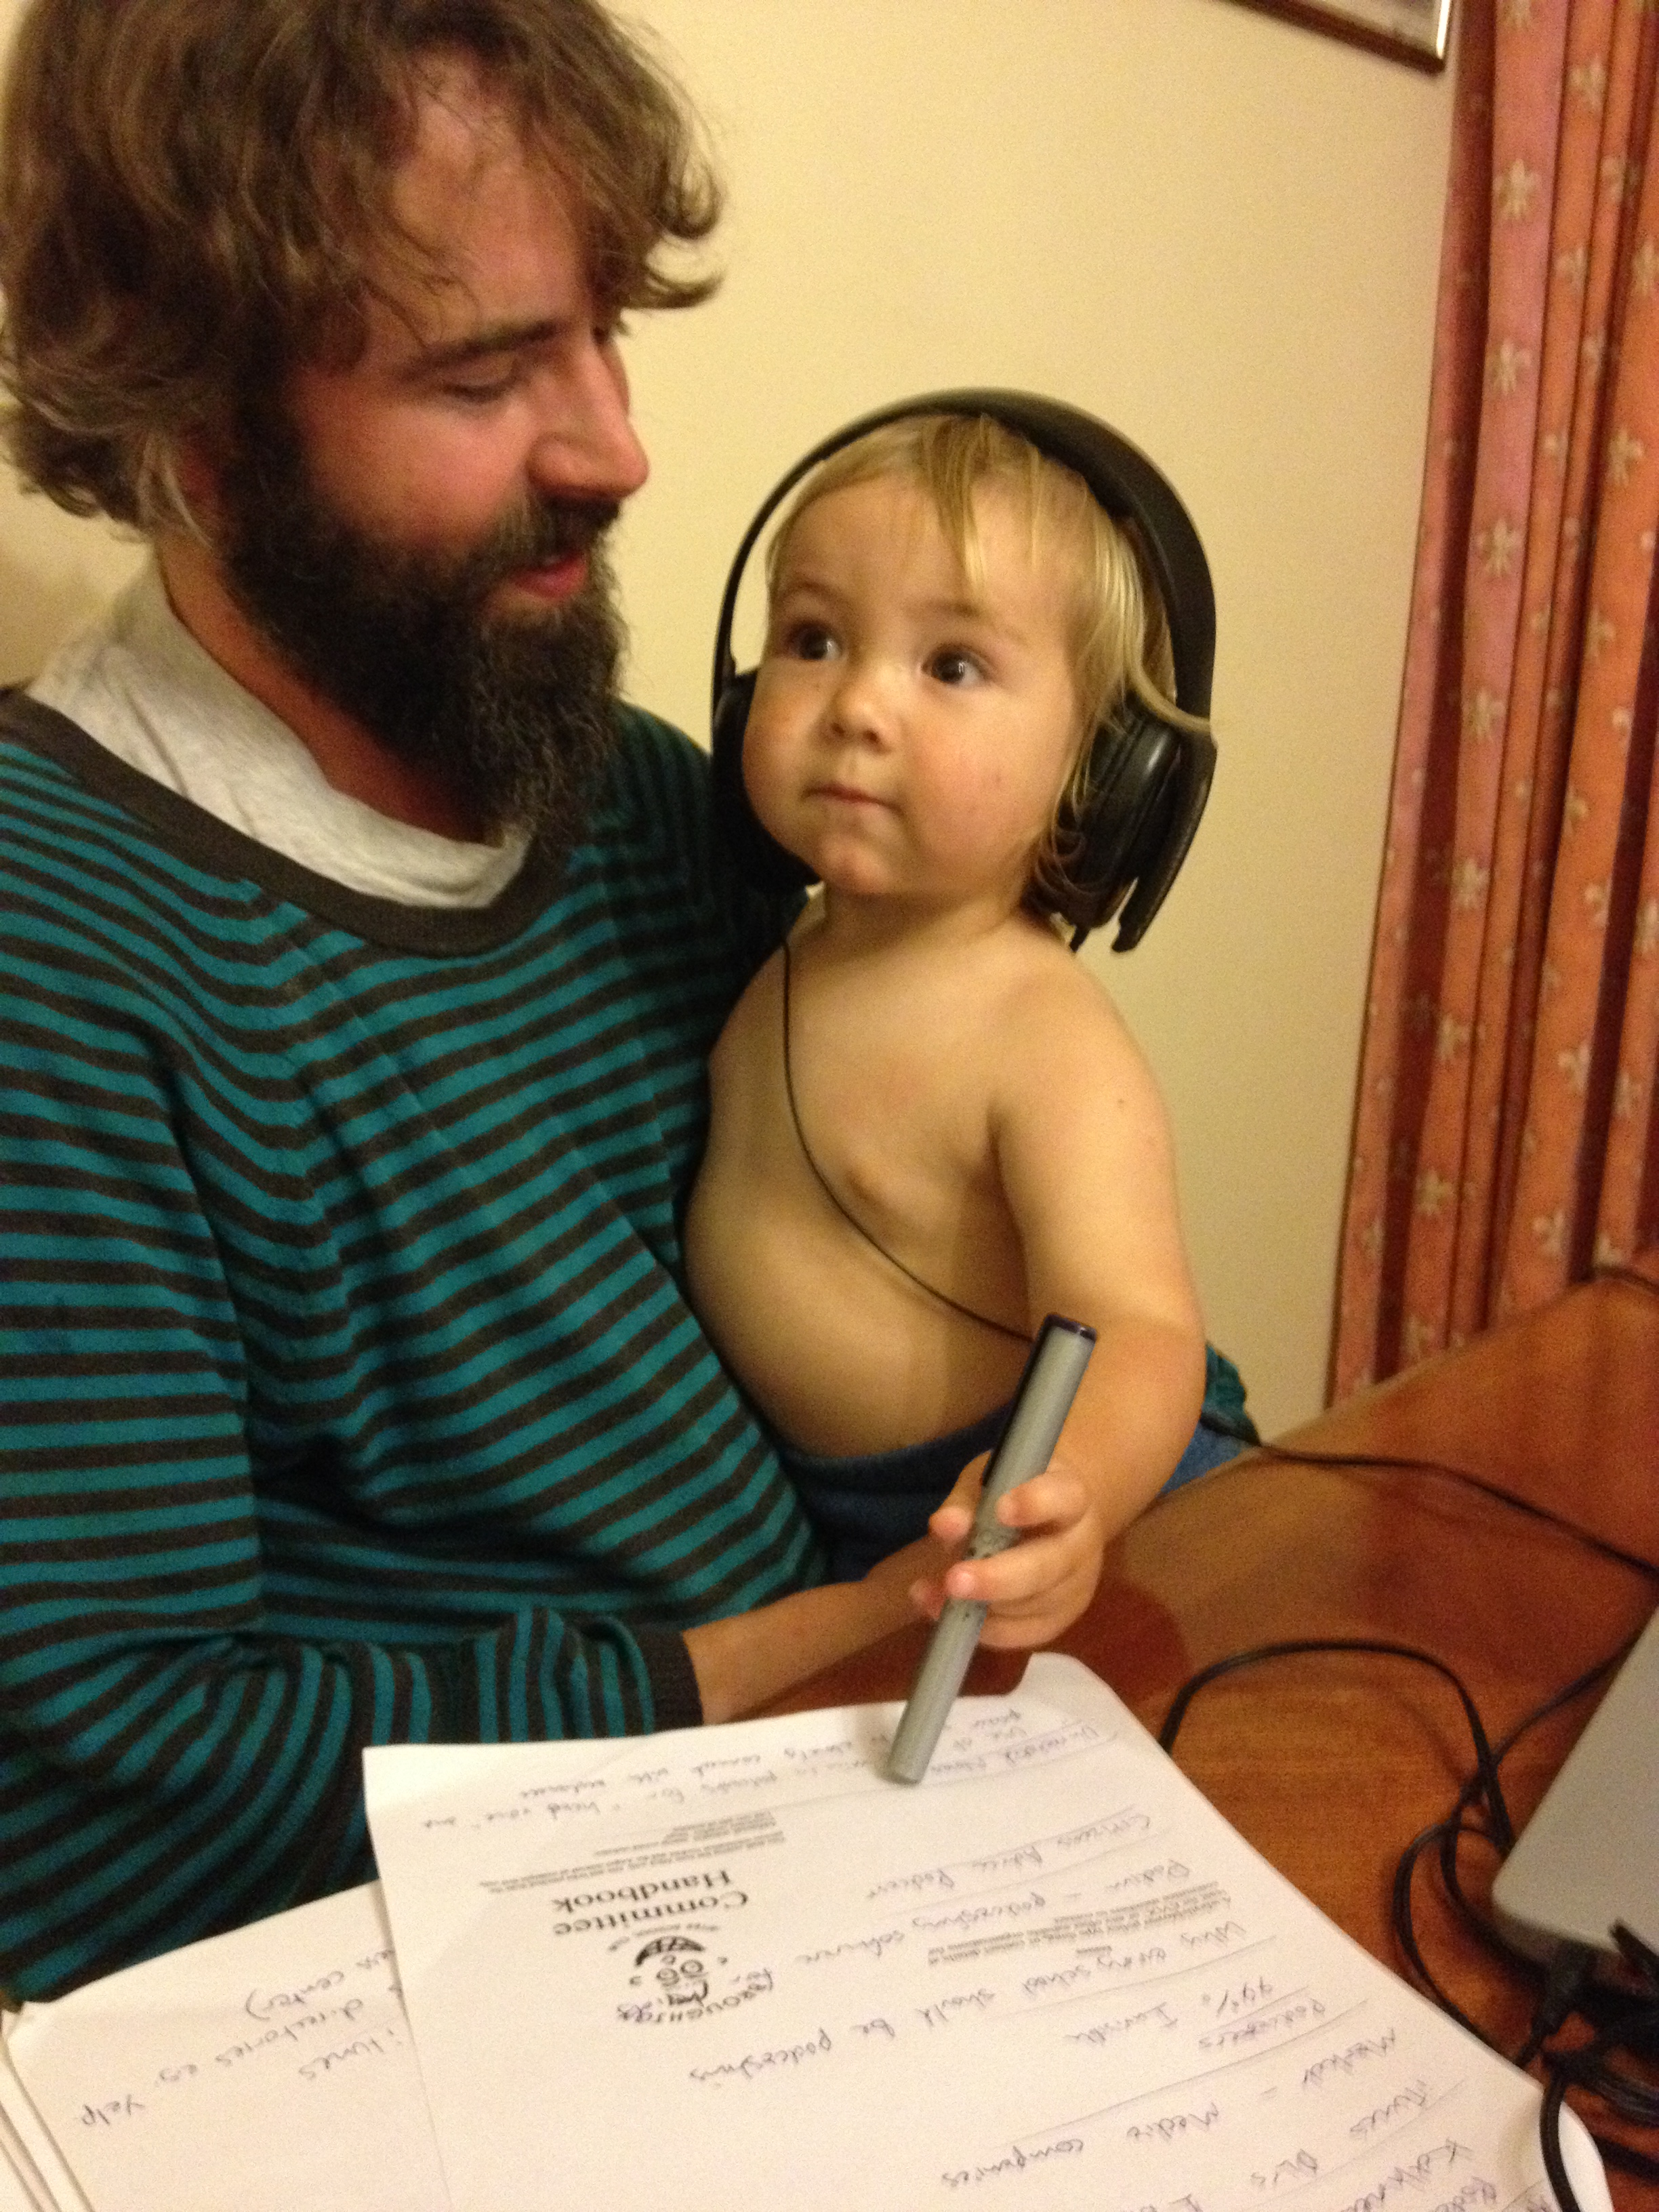 Ross and his baby, the baby is wearing headphones with a look of deep concentration whilst holding a pen over a pad of paper.